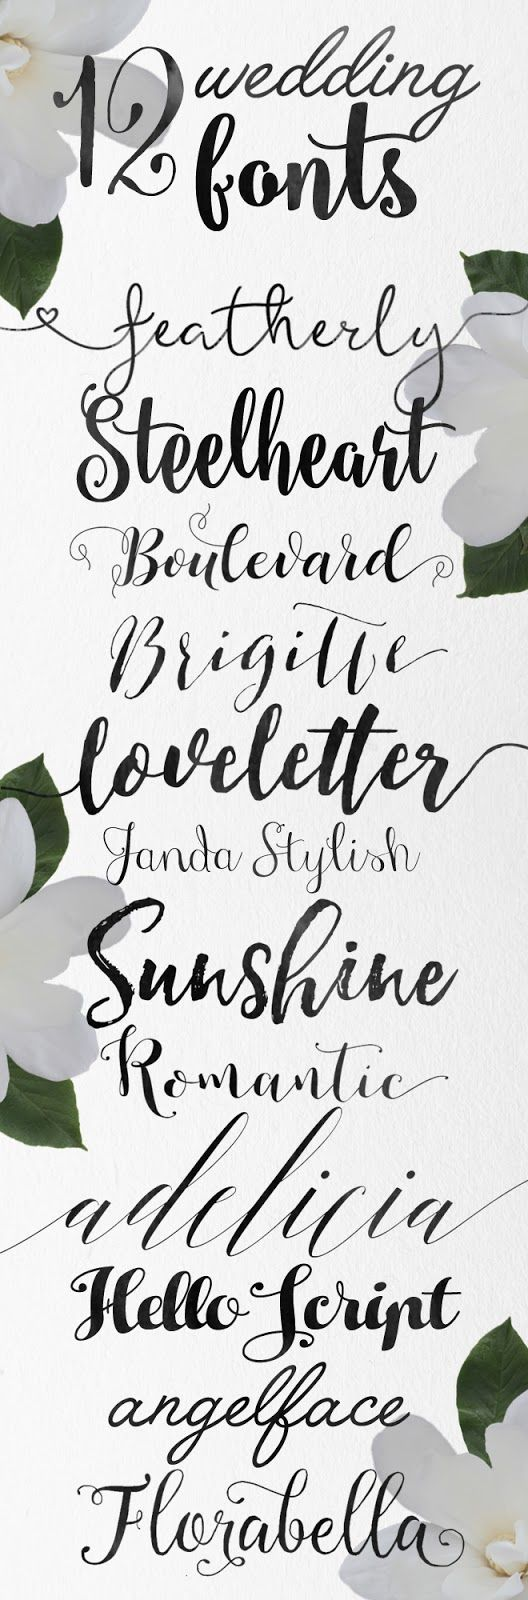 Wedding fonts fonts and calligraphy on pinterest Pinterest calligraphy